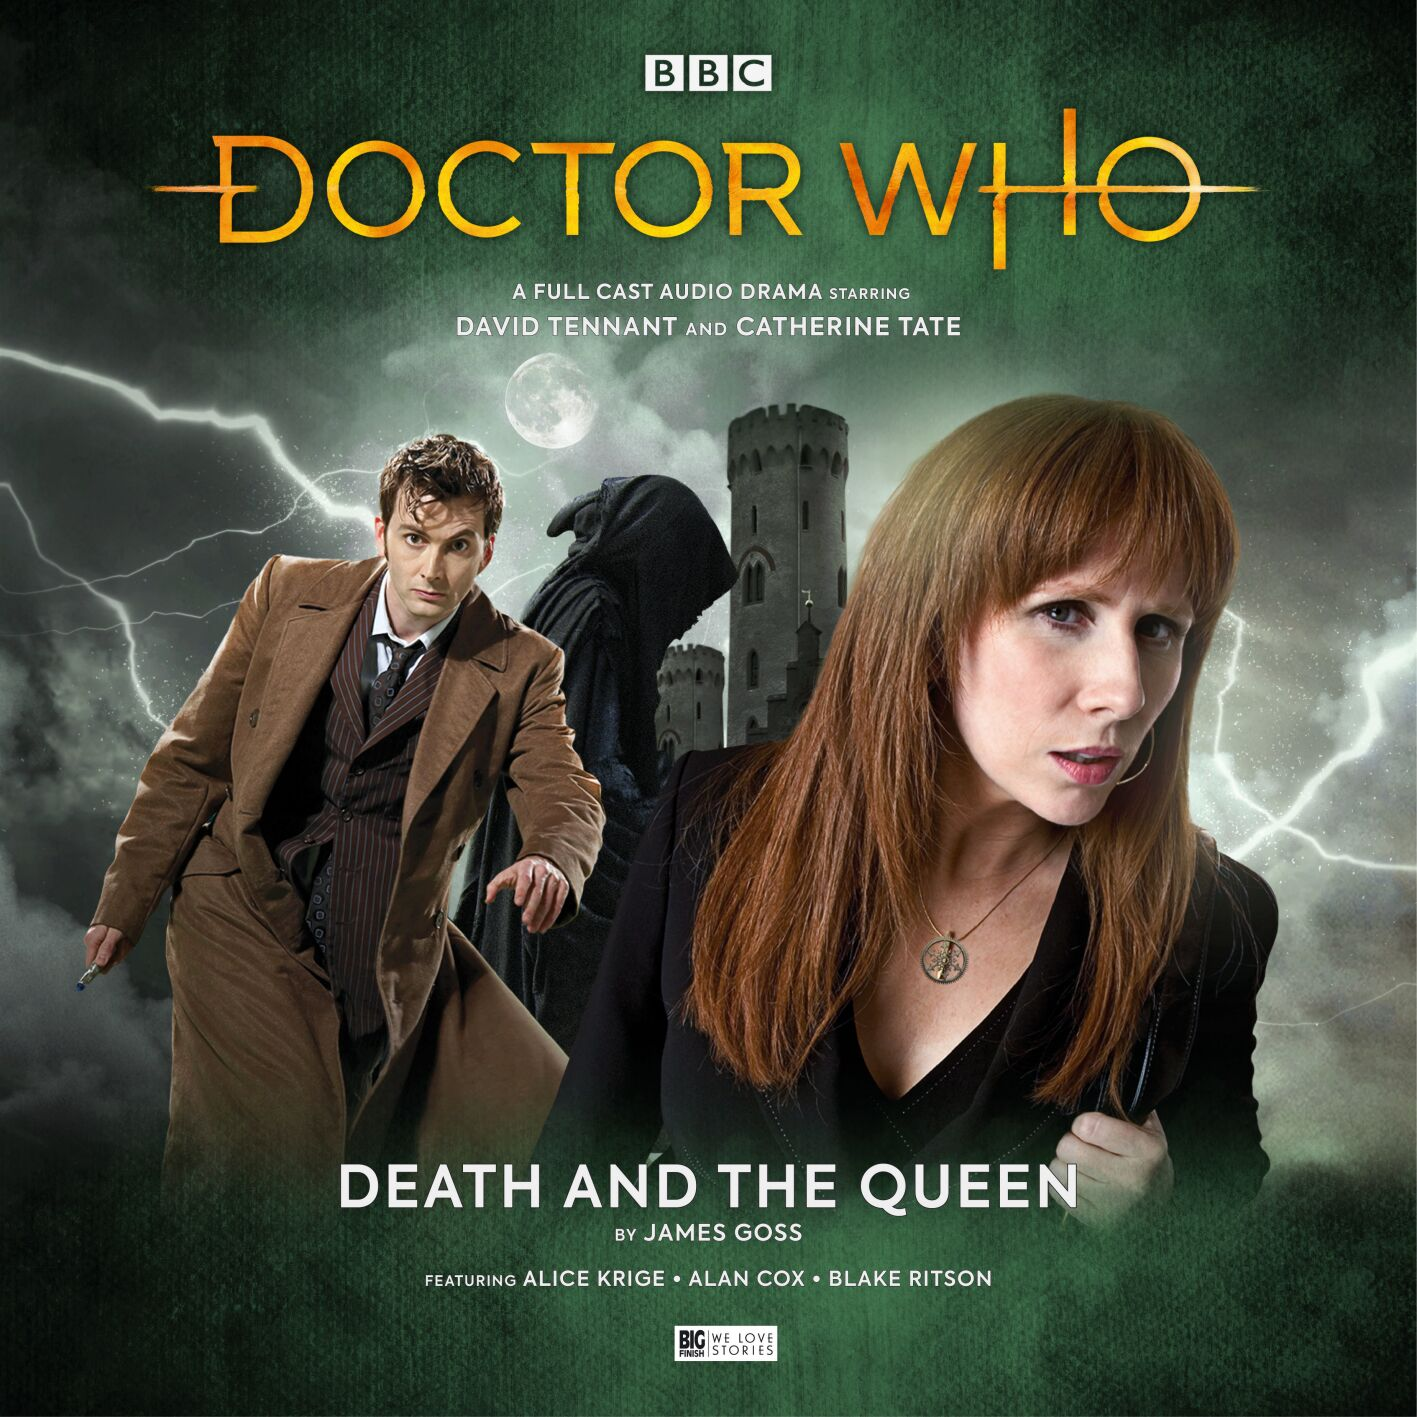 Doctor Who: New Tenth Doctor vinyl now available at HMV!